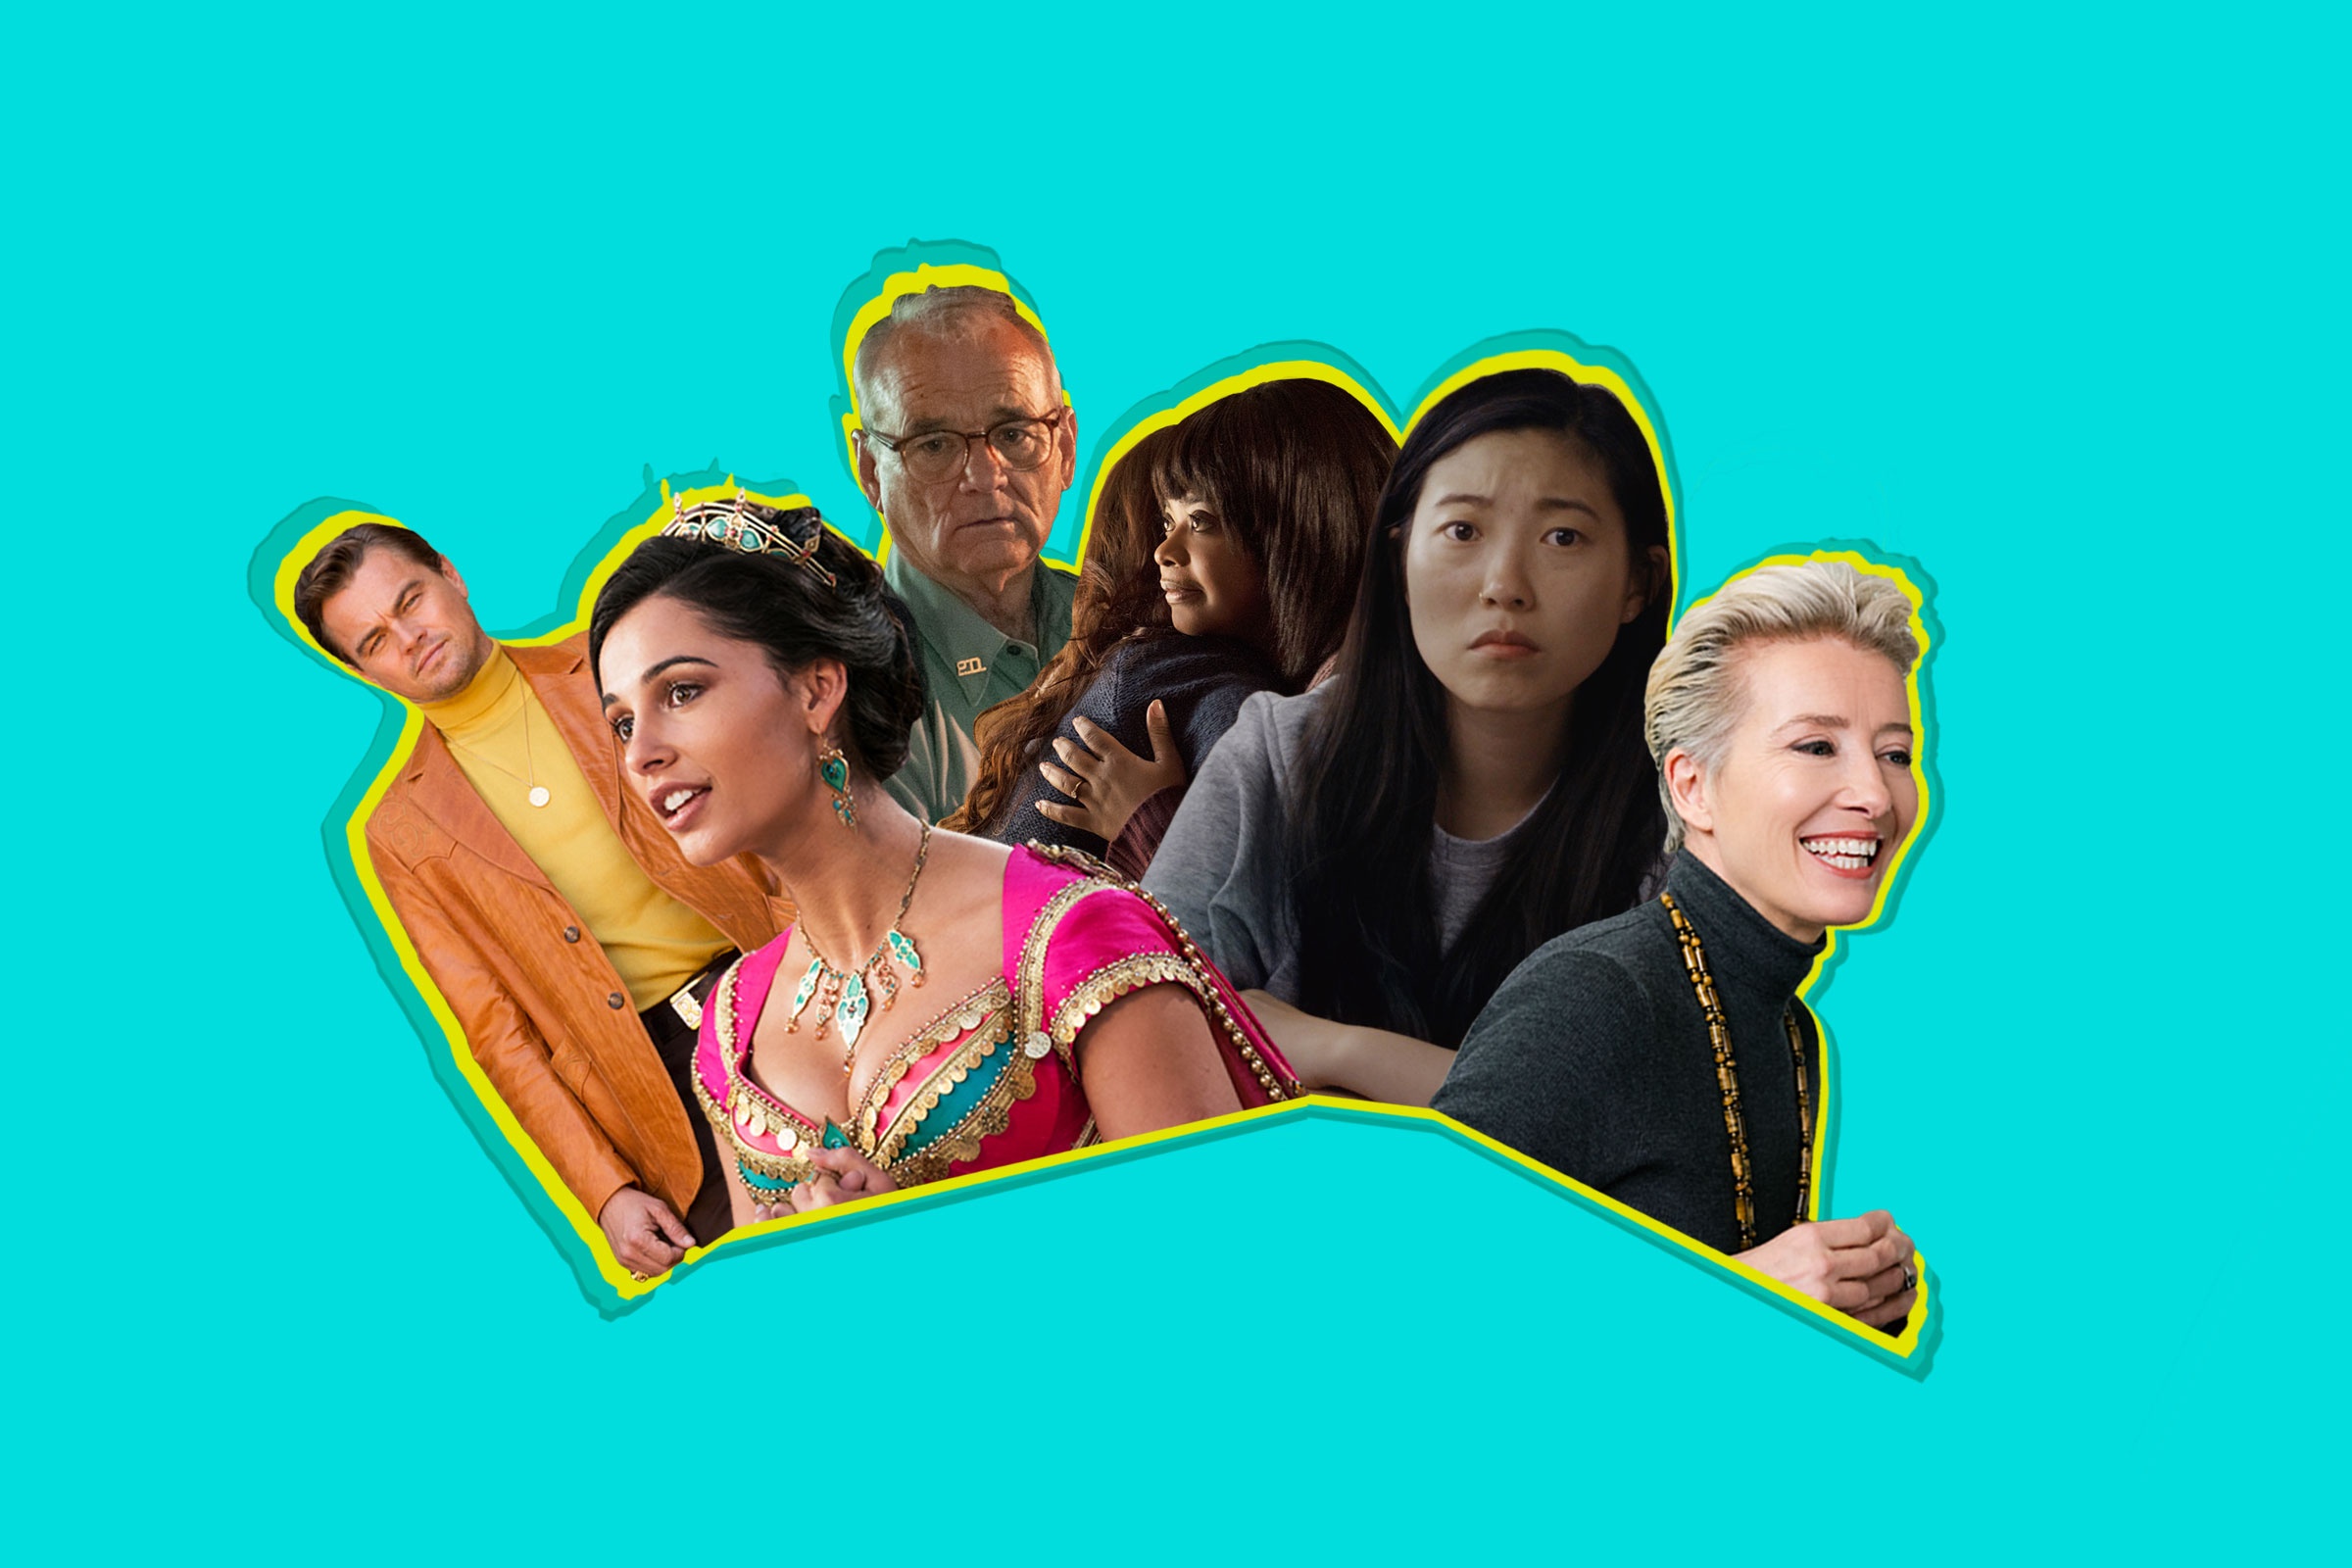 From left to right: Leonardo DiCaprio in Once Upon a Time in Hollywood; Naomi Scott in Aladdin; Bill Murray in The Dead Don't Die; Octavia Spencer in Ma; Awkwafina in The Farewell; Emma Thompson in Late Night.